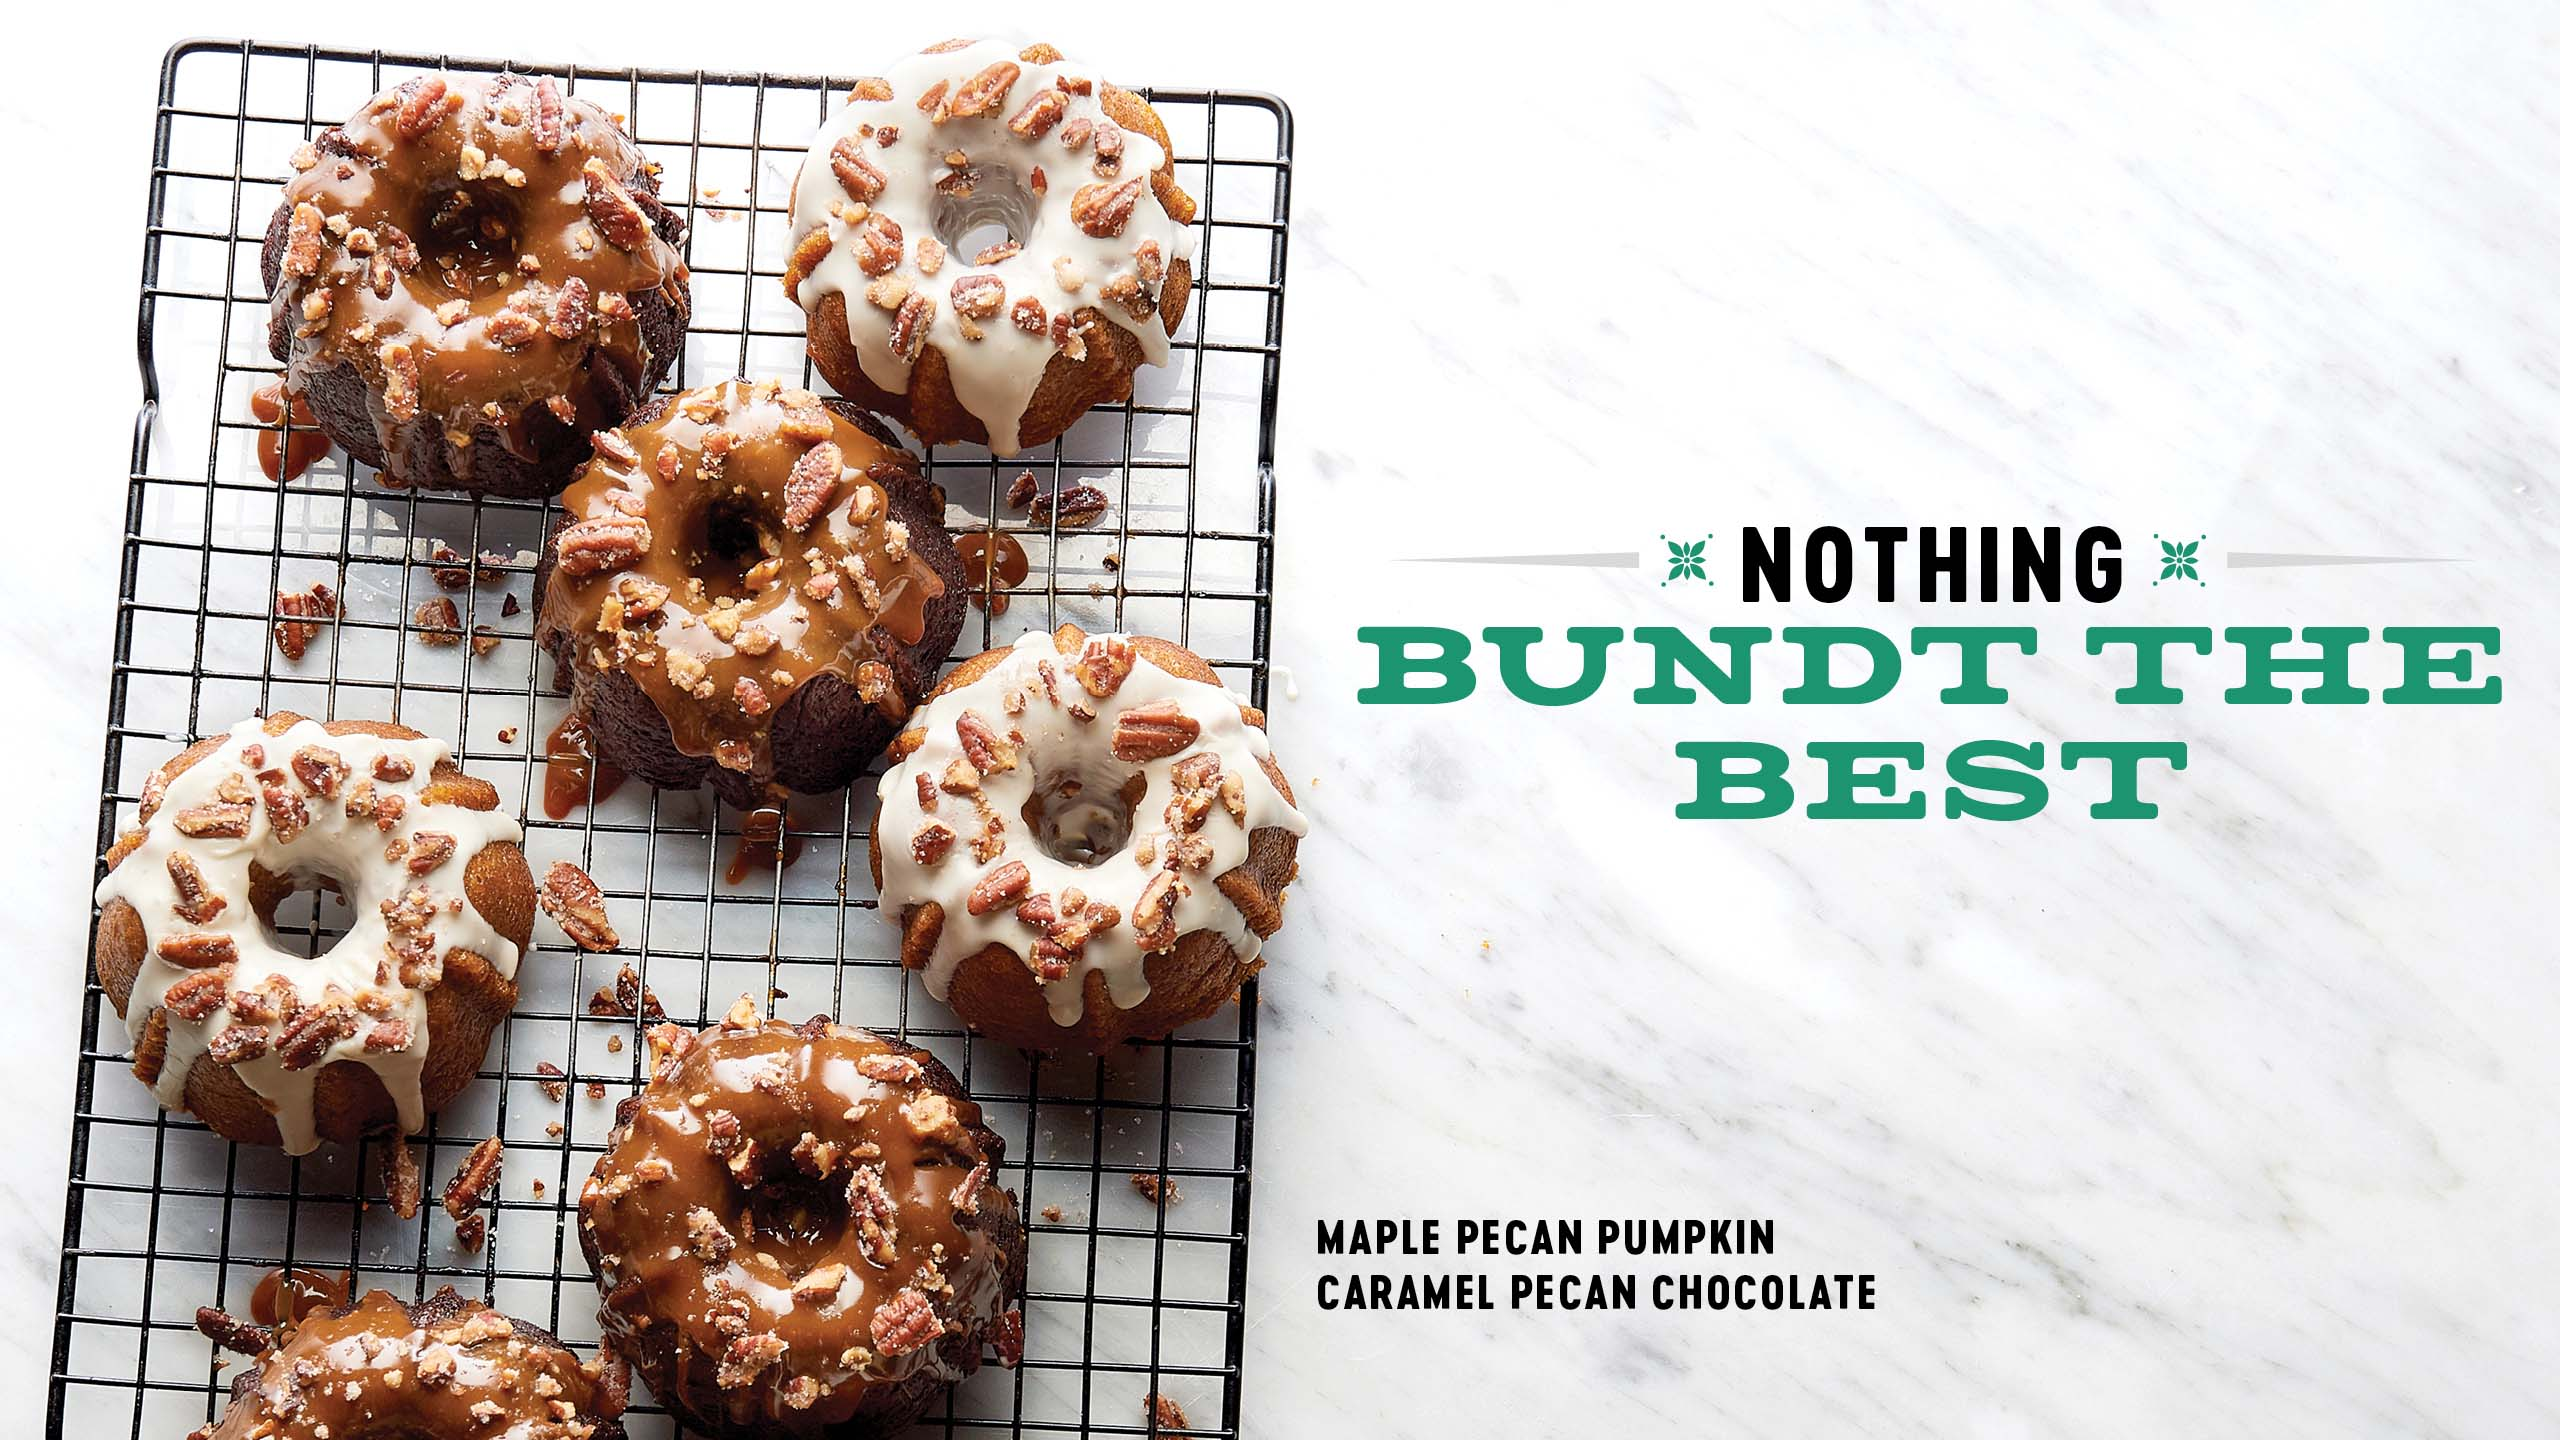 Nothing Bundt the Best